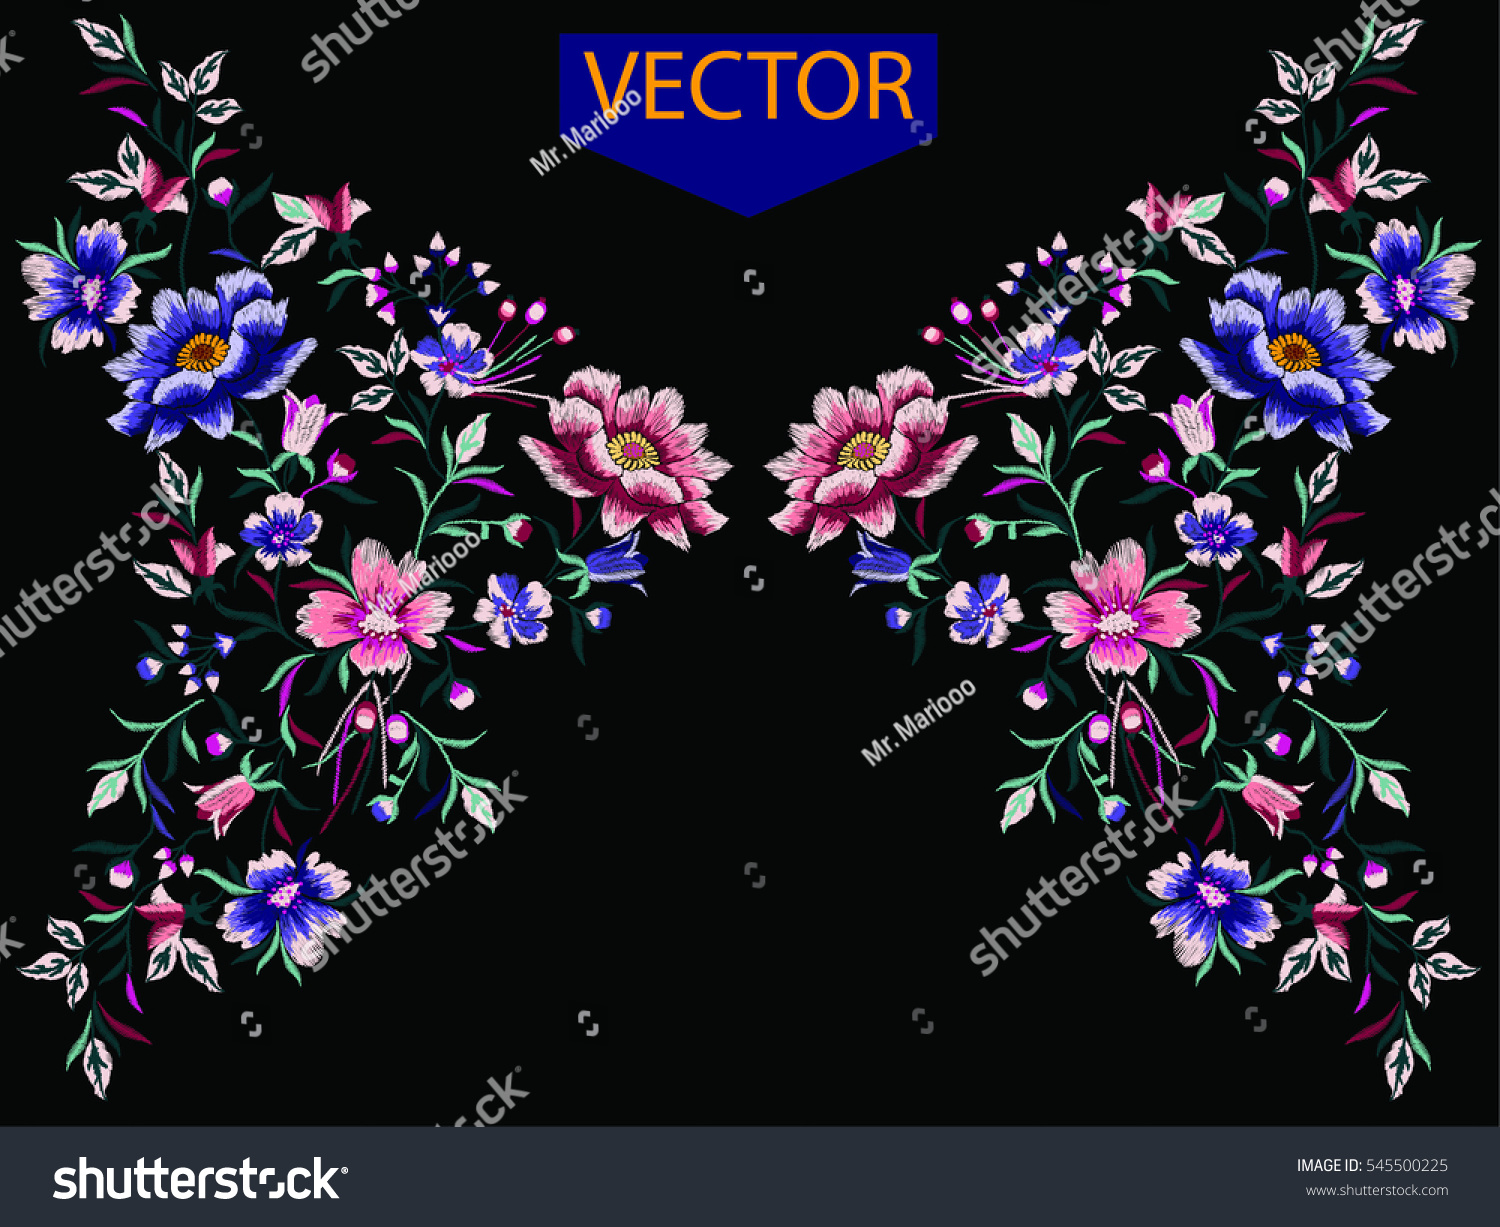 Edit vectors free online embroidery ethnic Online vector editor